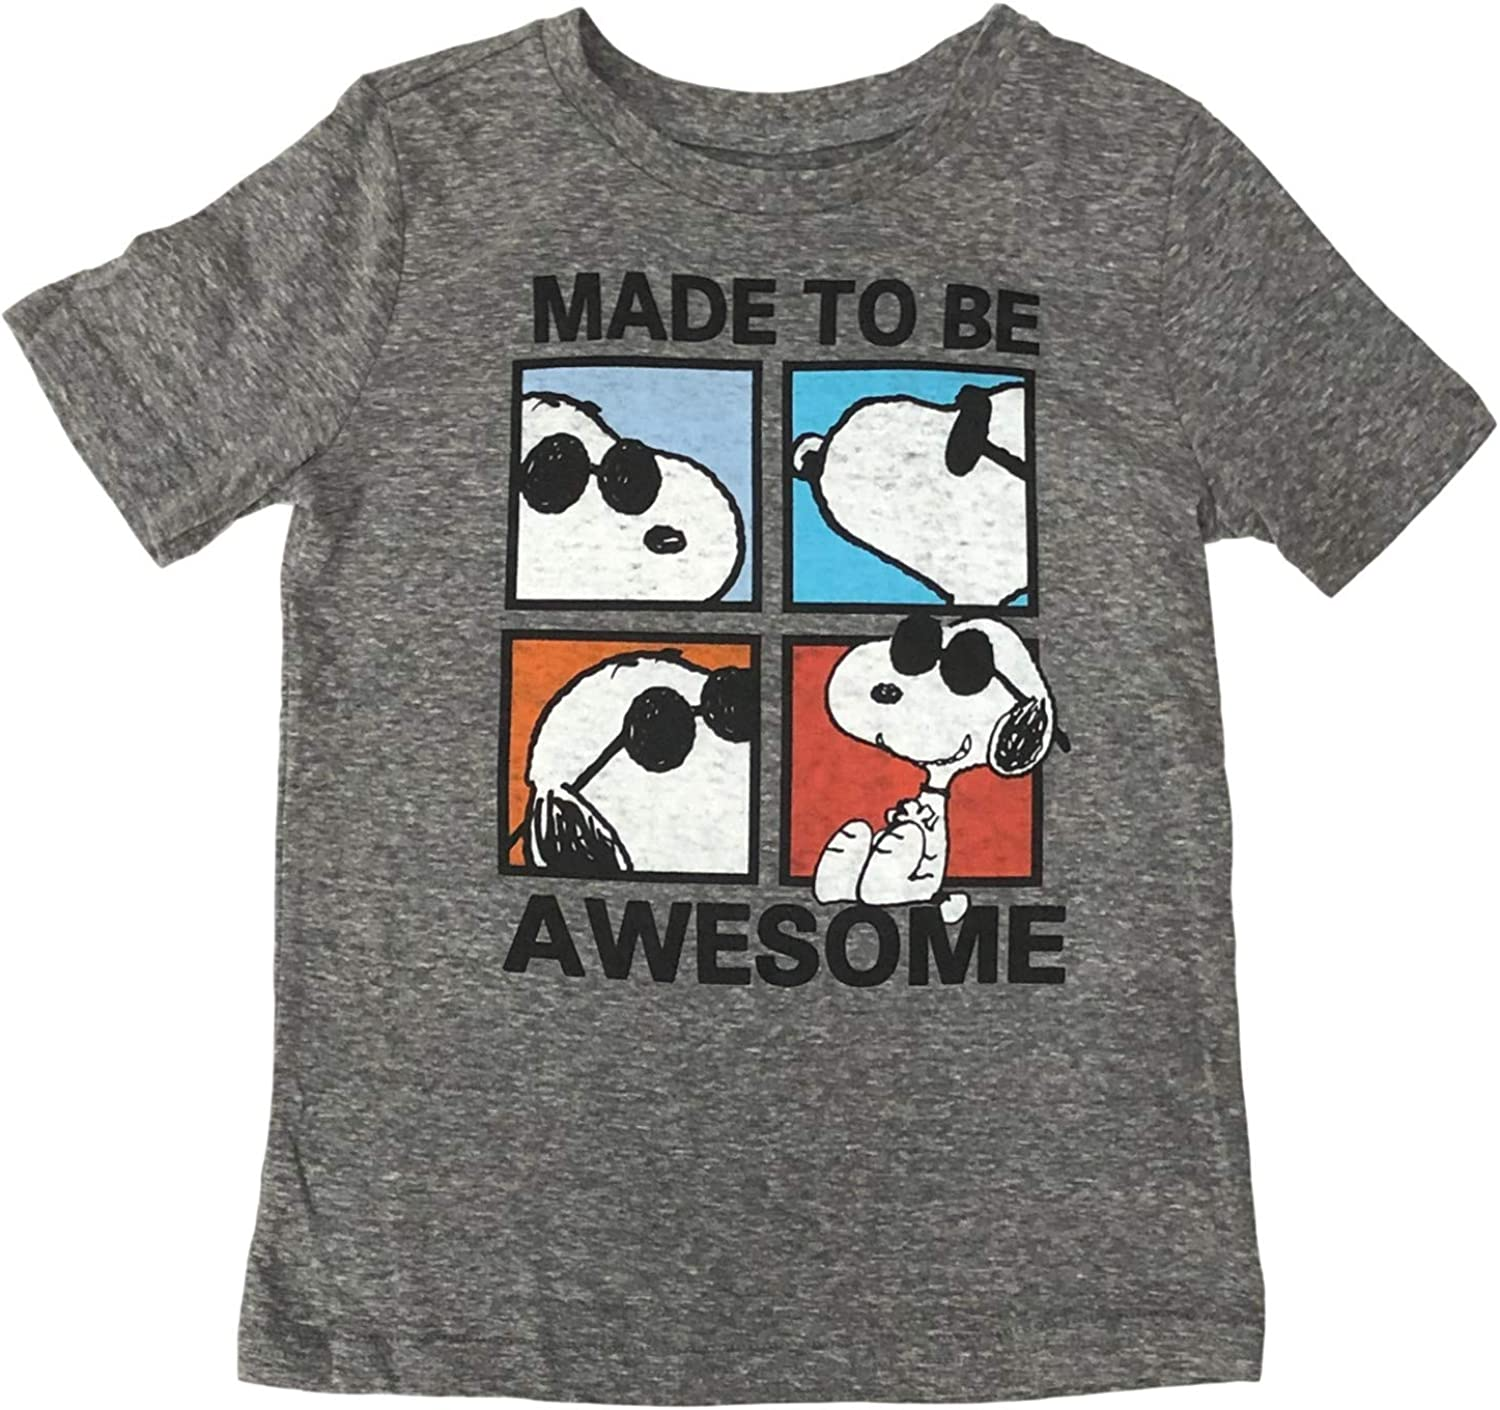 Jumping Beans Peanuts Boys Short Sleeve Gray Snoopy Made Awesome T-Shirt Tee